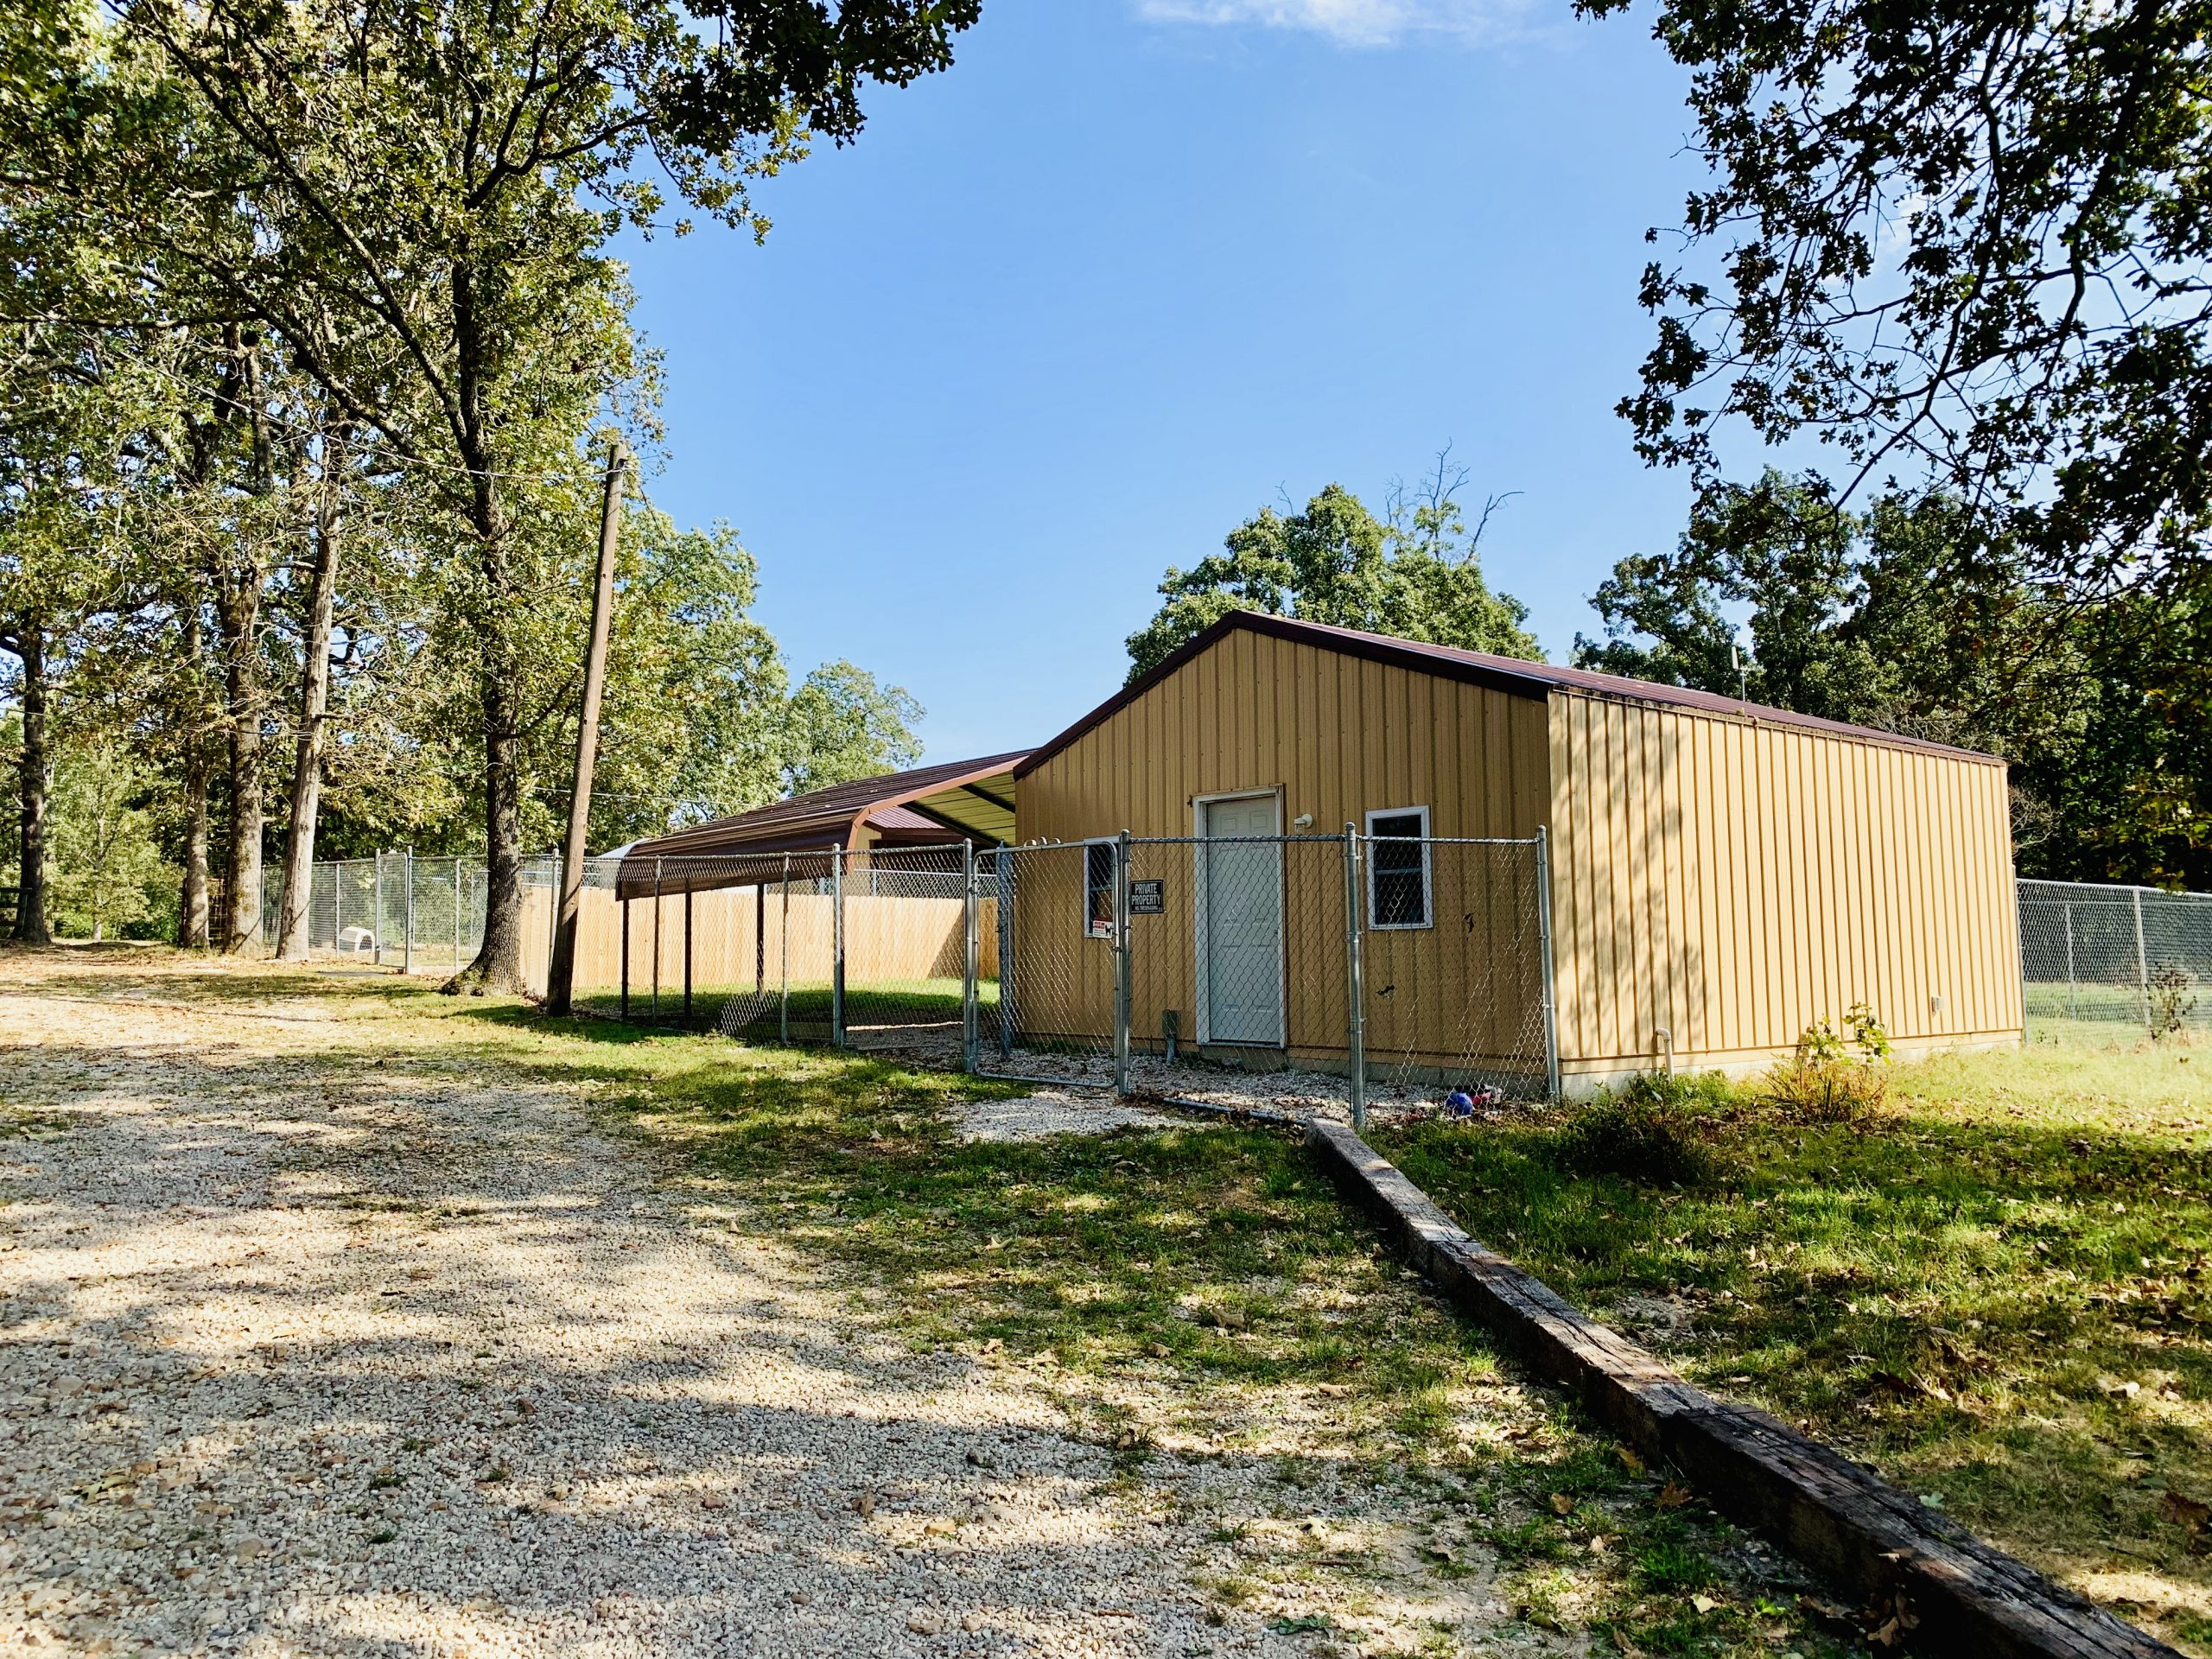 A view of Kelley's dog grooming and boarding building